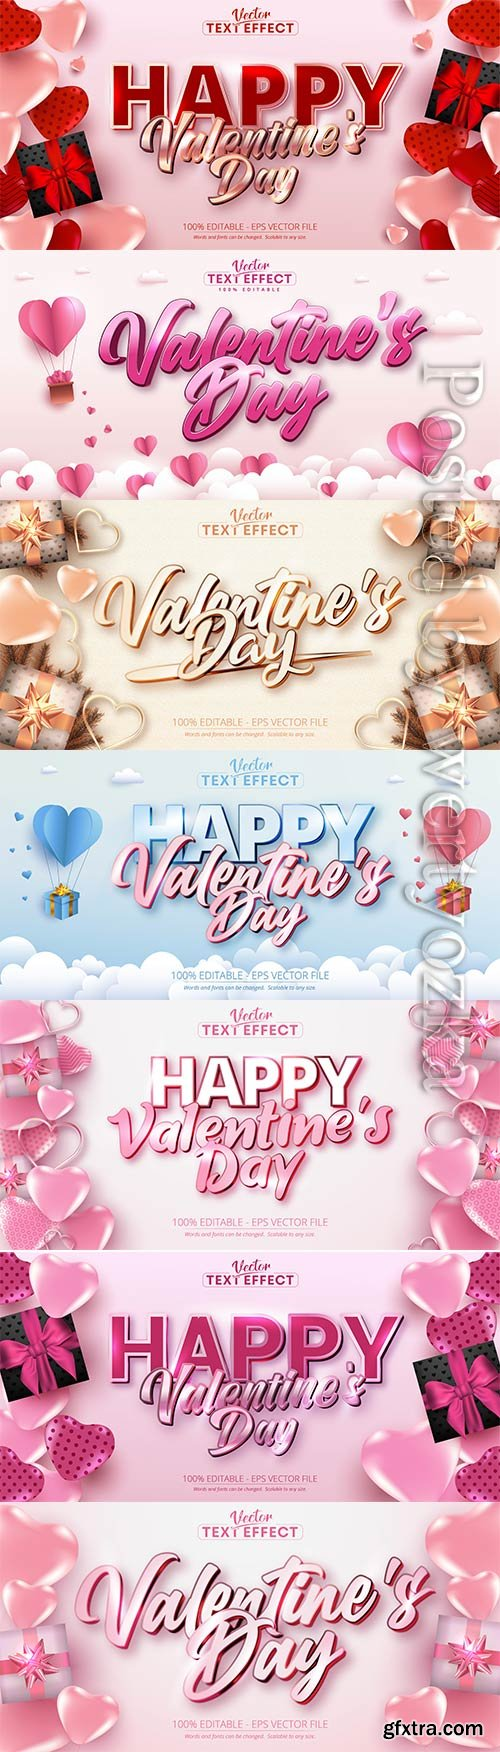 Valentine text effects style with hearts in vector